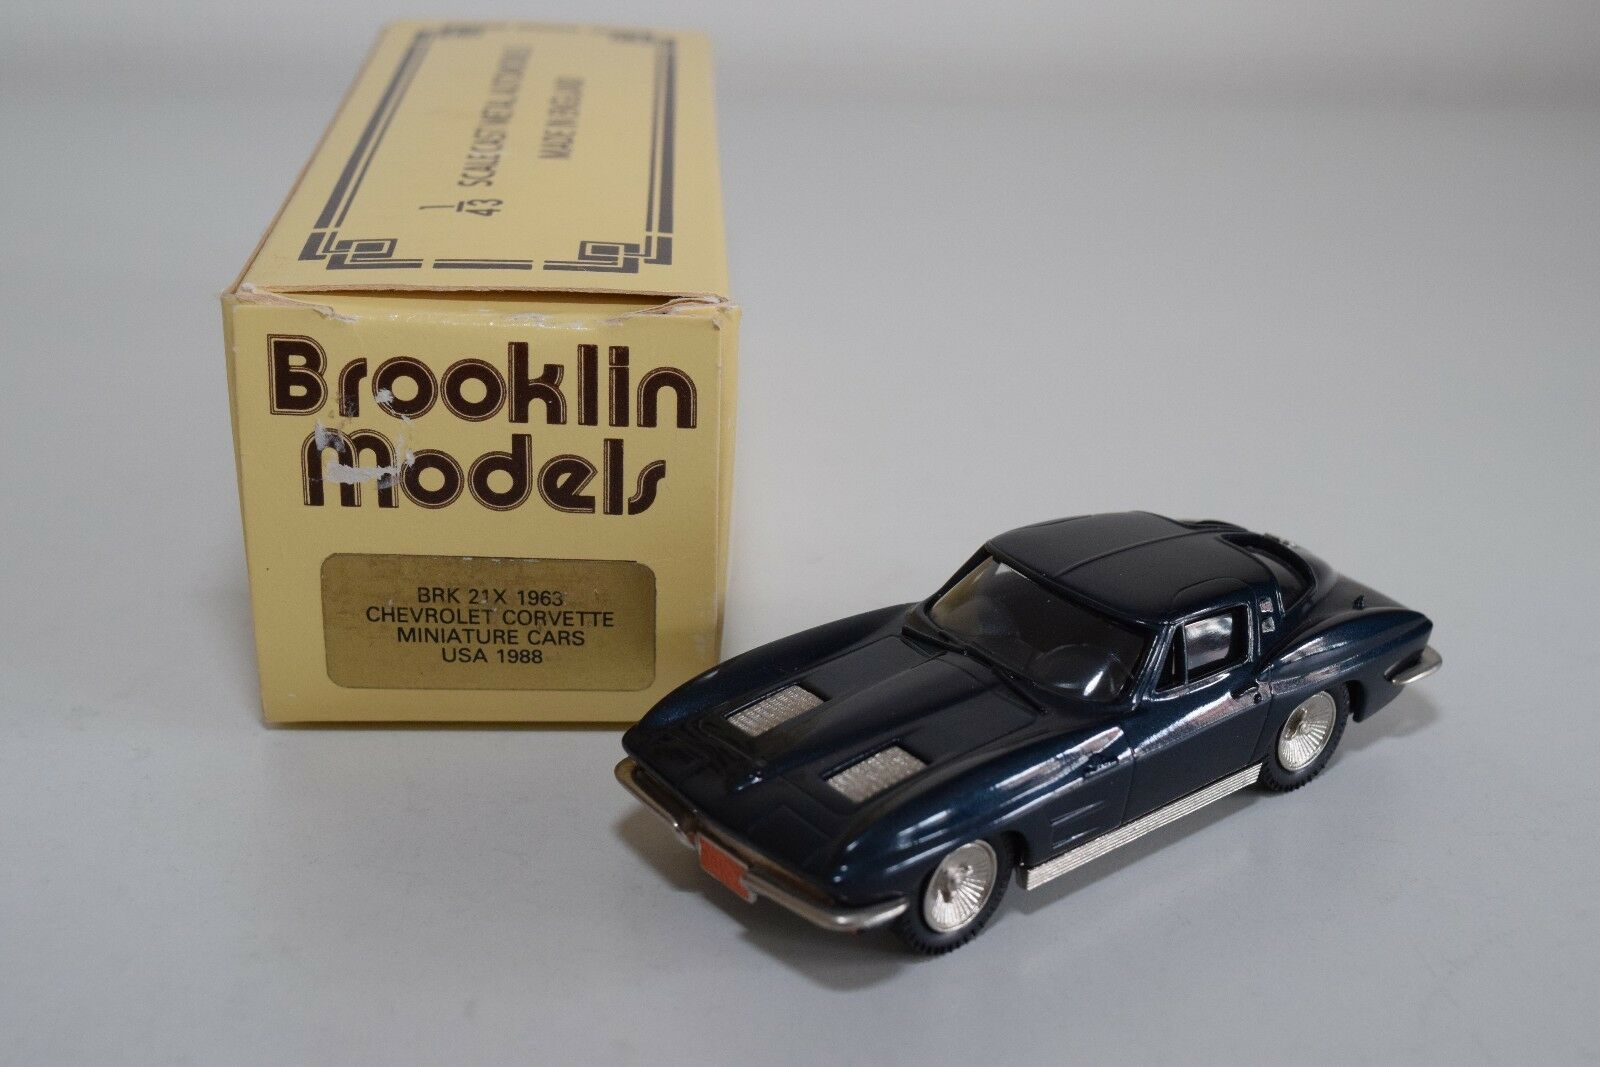 BROOKLIN BRK 21 BRK21 1963 CHEVROLET CORVETTE USA 1988 blueE MINT BOXED